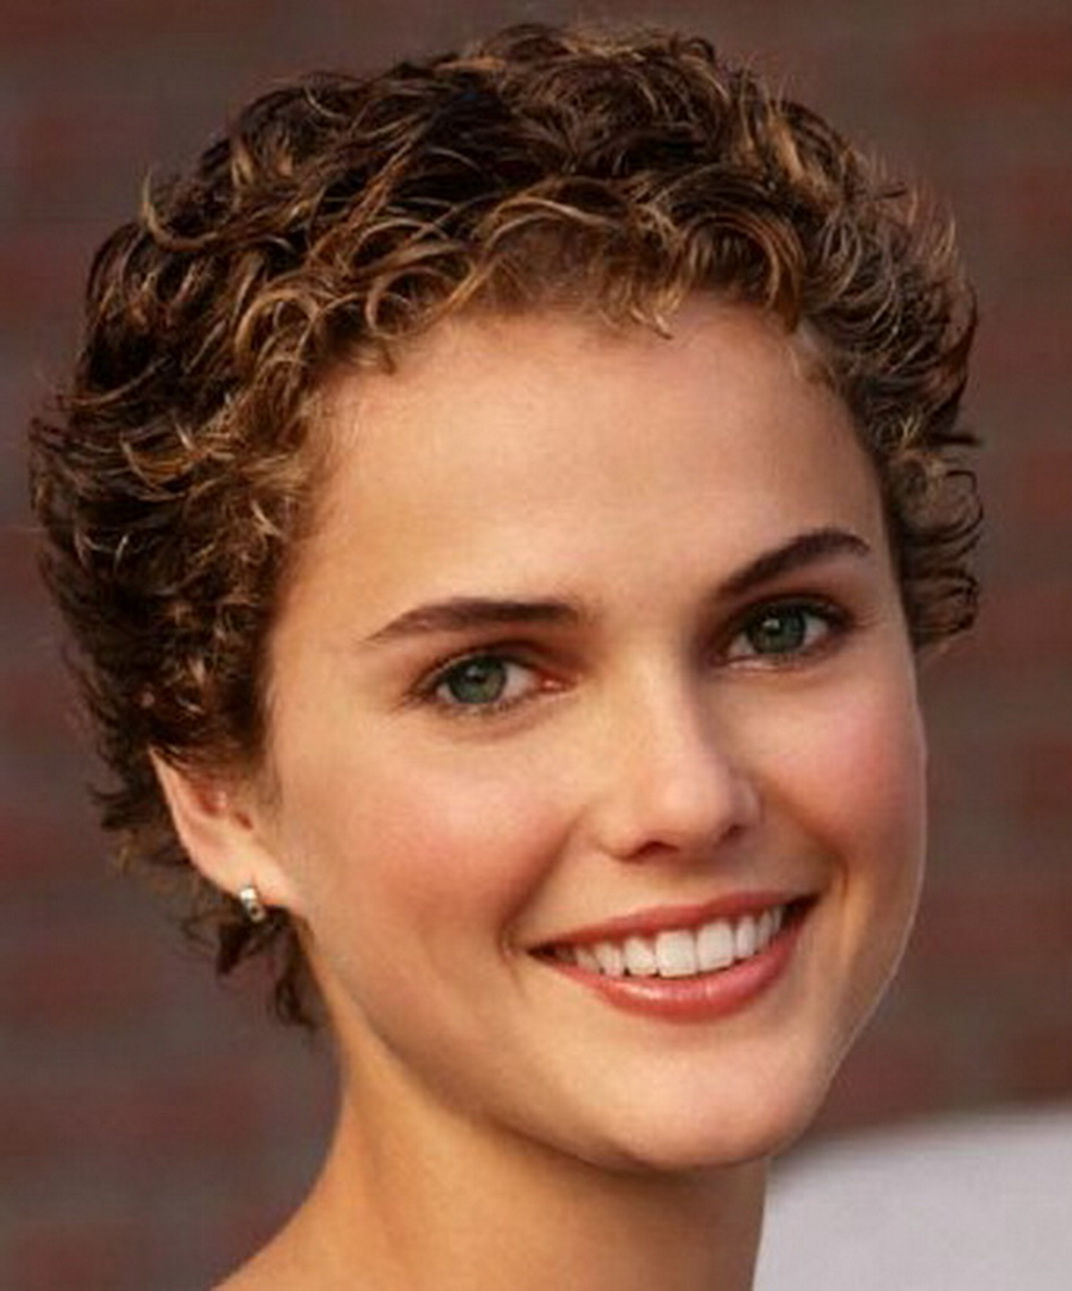 Short Curly Hairstyles For An Oval Face — White Salmon Wines : Fresh With Regard To Short Haircuts For Naturally Curly Hair And Round Face (View 12 of 25)